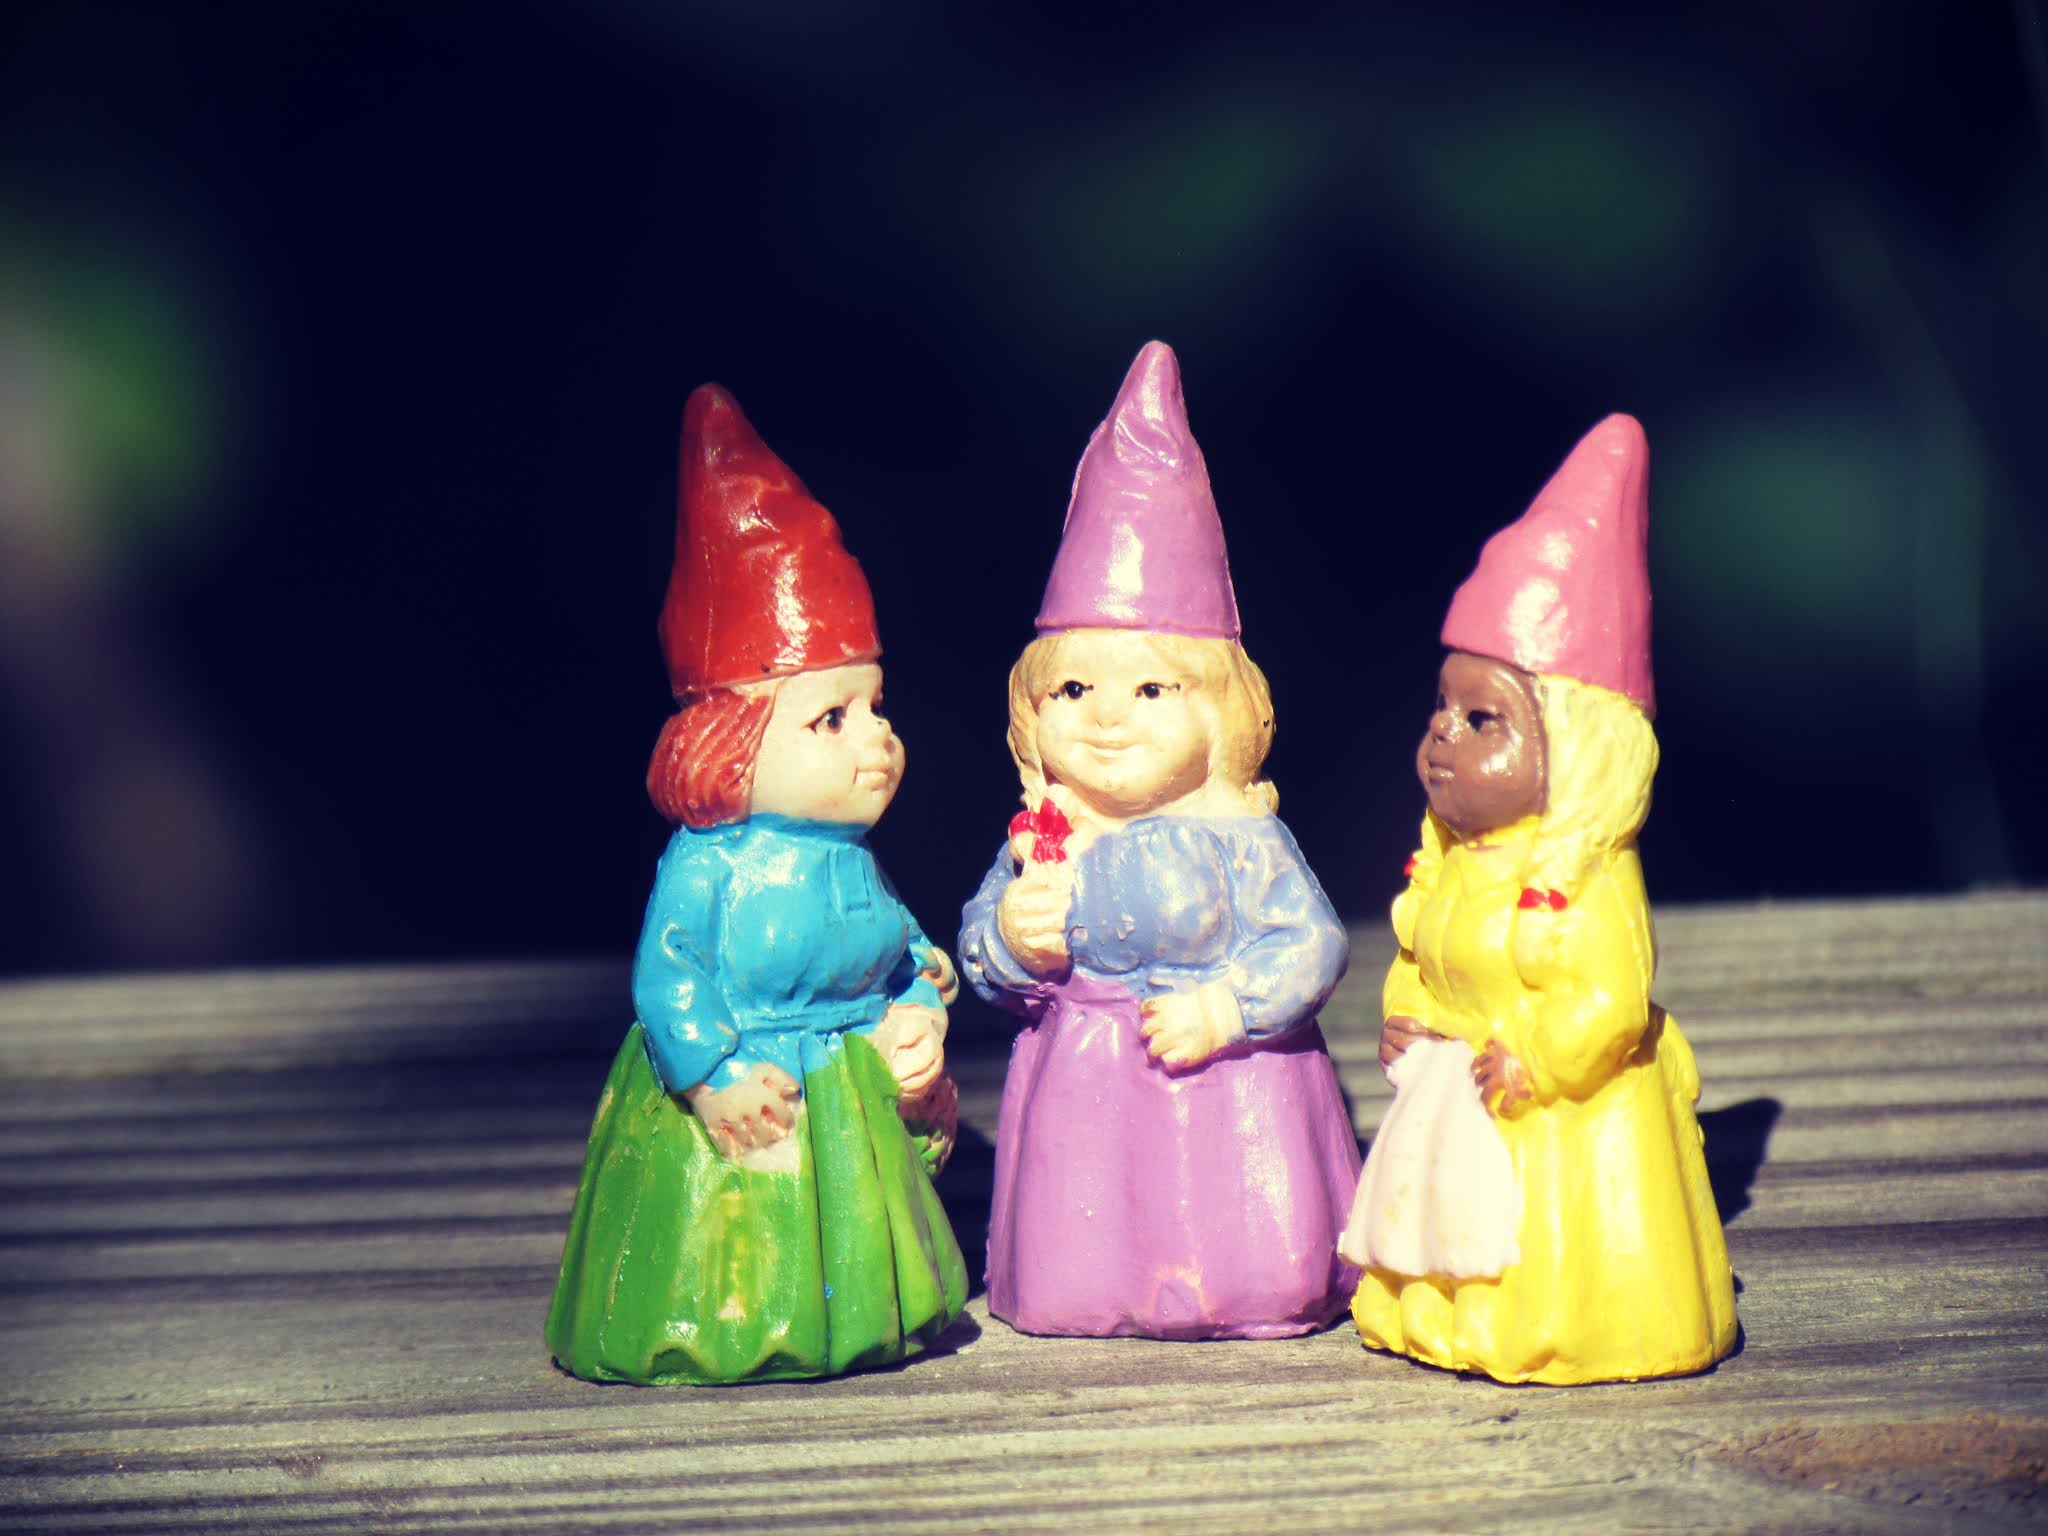 Three of cups tarot card with three gnome sisters celebrating the seasons of life with a green witch coven of sisterhood